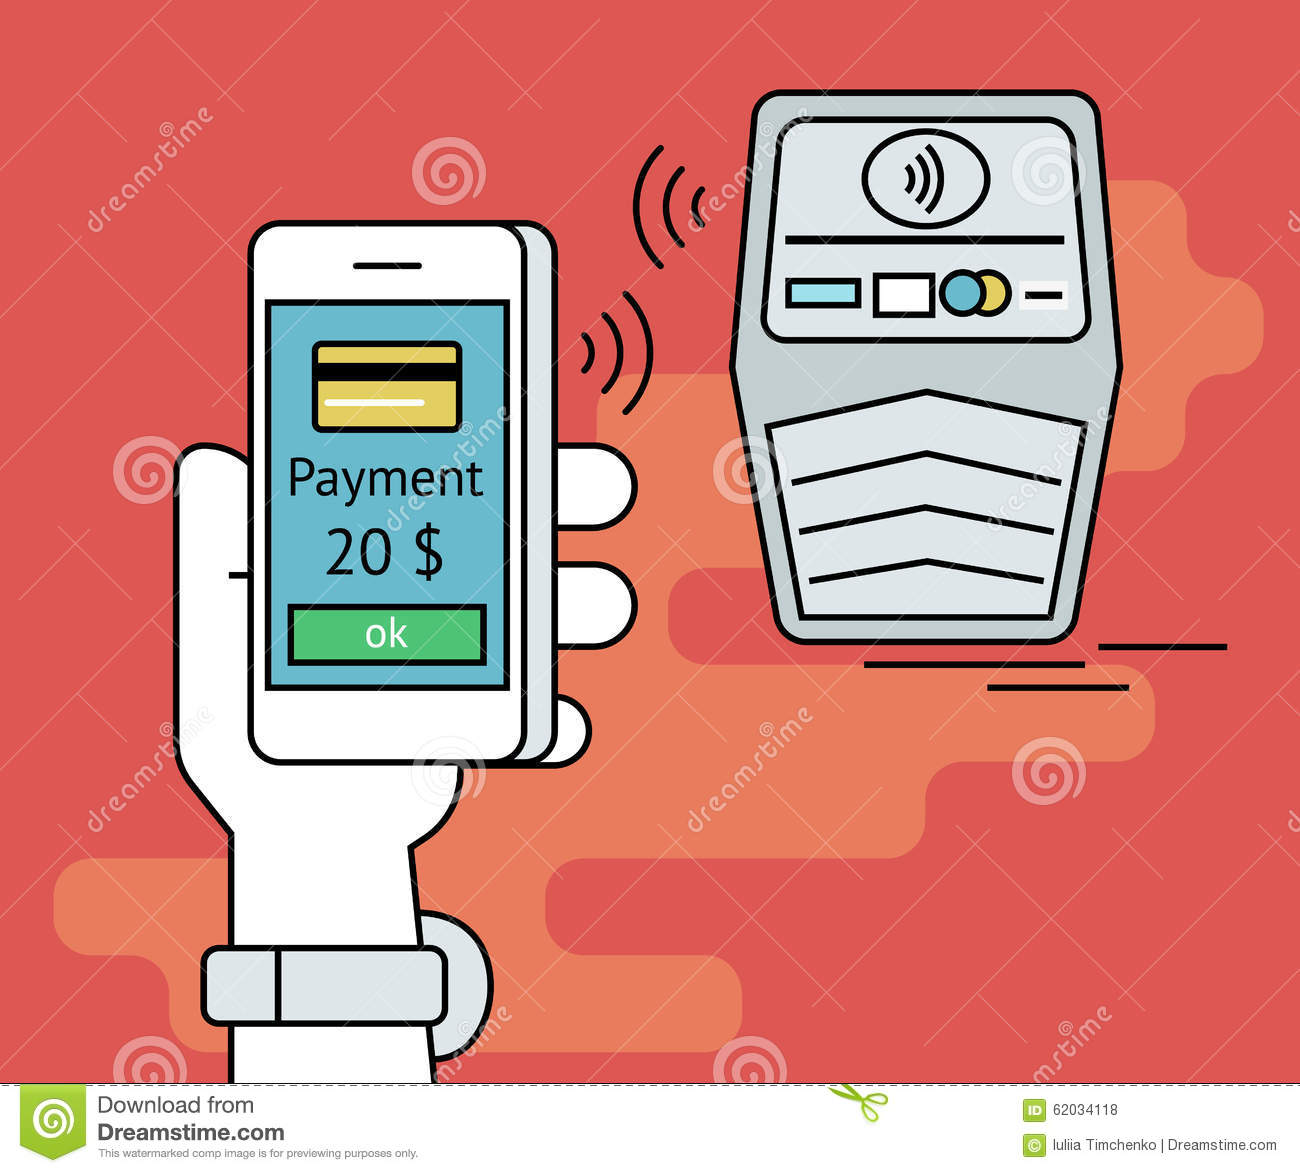 Image Result For Smartphone Line Access Fee Device Paymenta